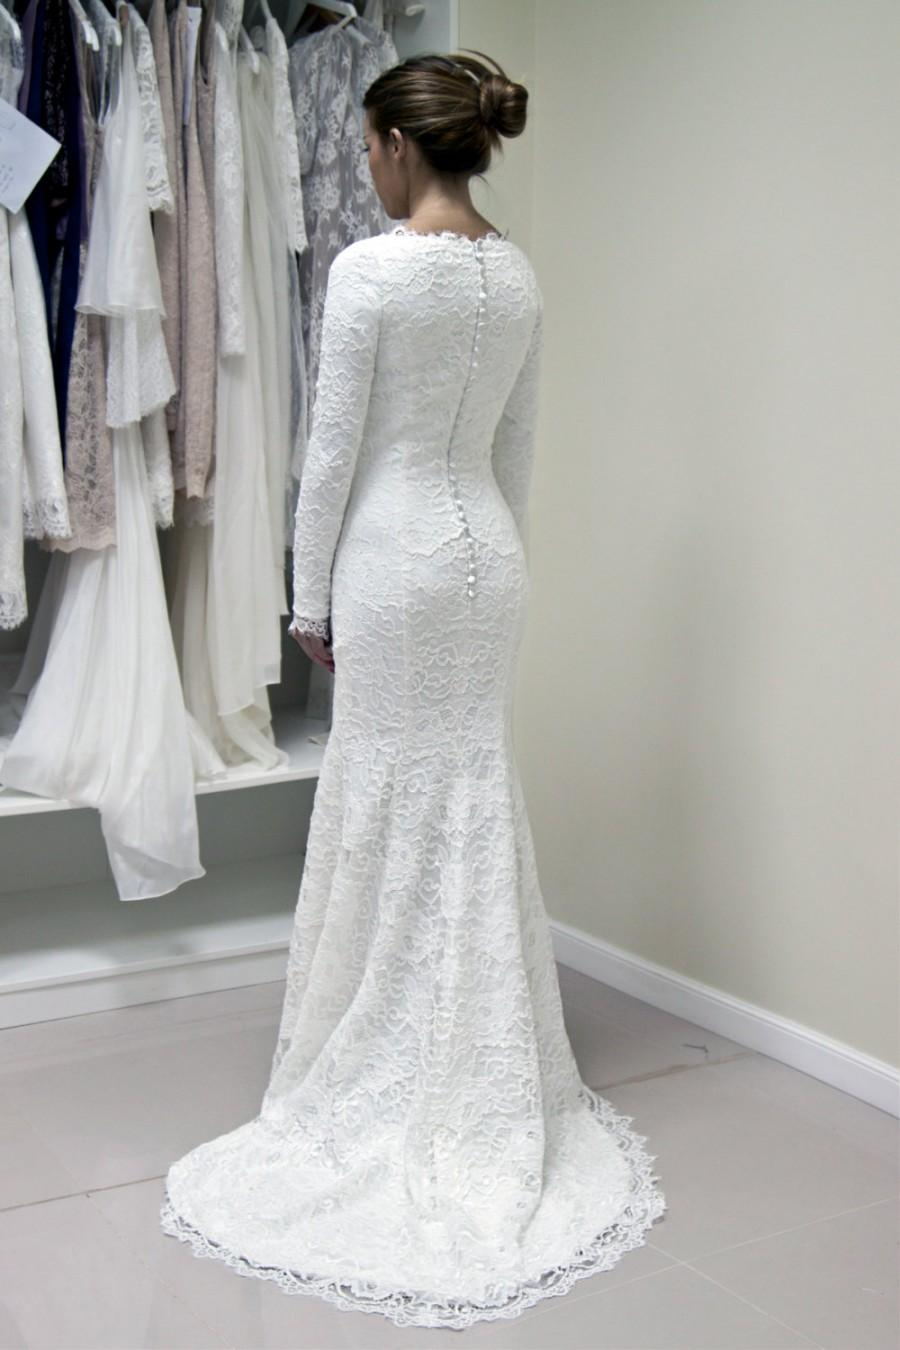 French Lace Wedding Gown With Lined Sleeves And Scalloped Neckline ...